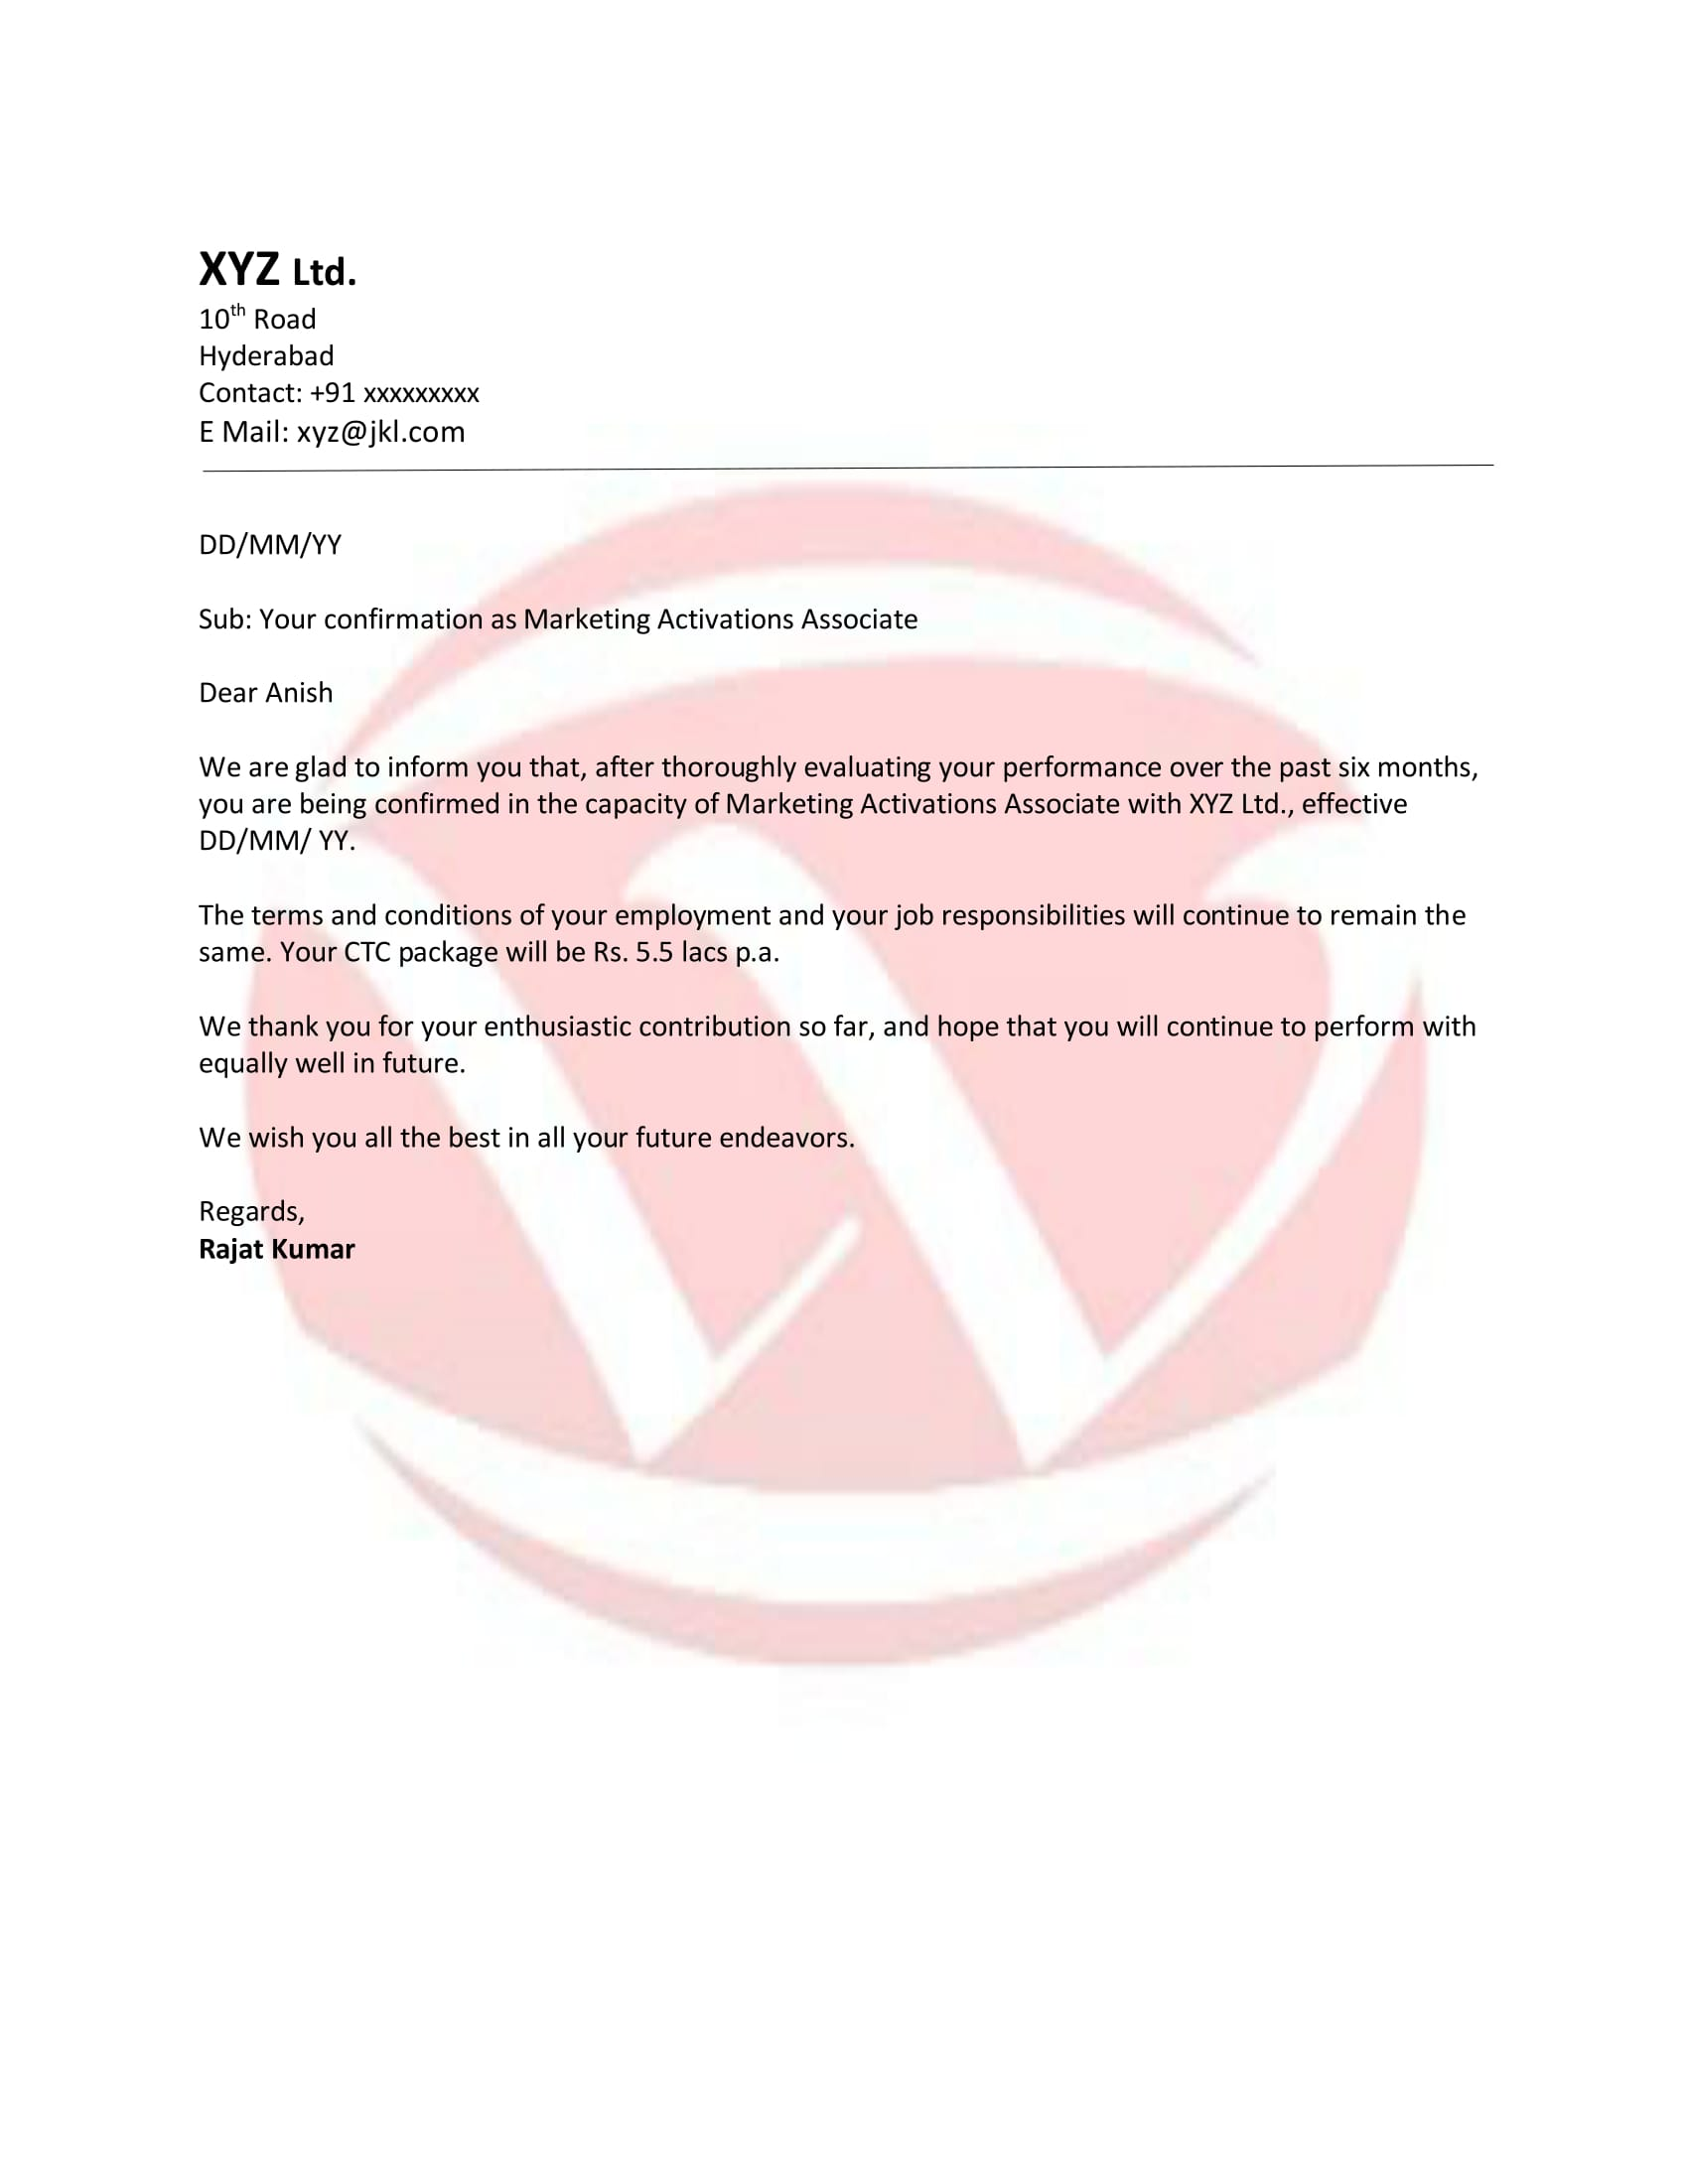 Confirmation sample letter format download letter format templates confirmation sample letter spiritdancerdesigns Gallery